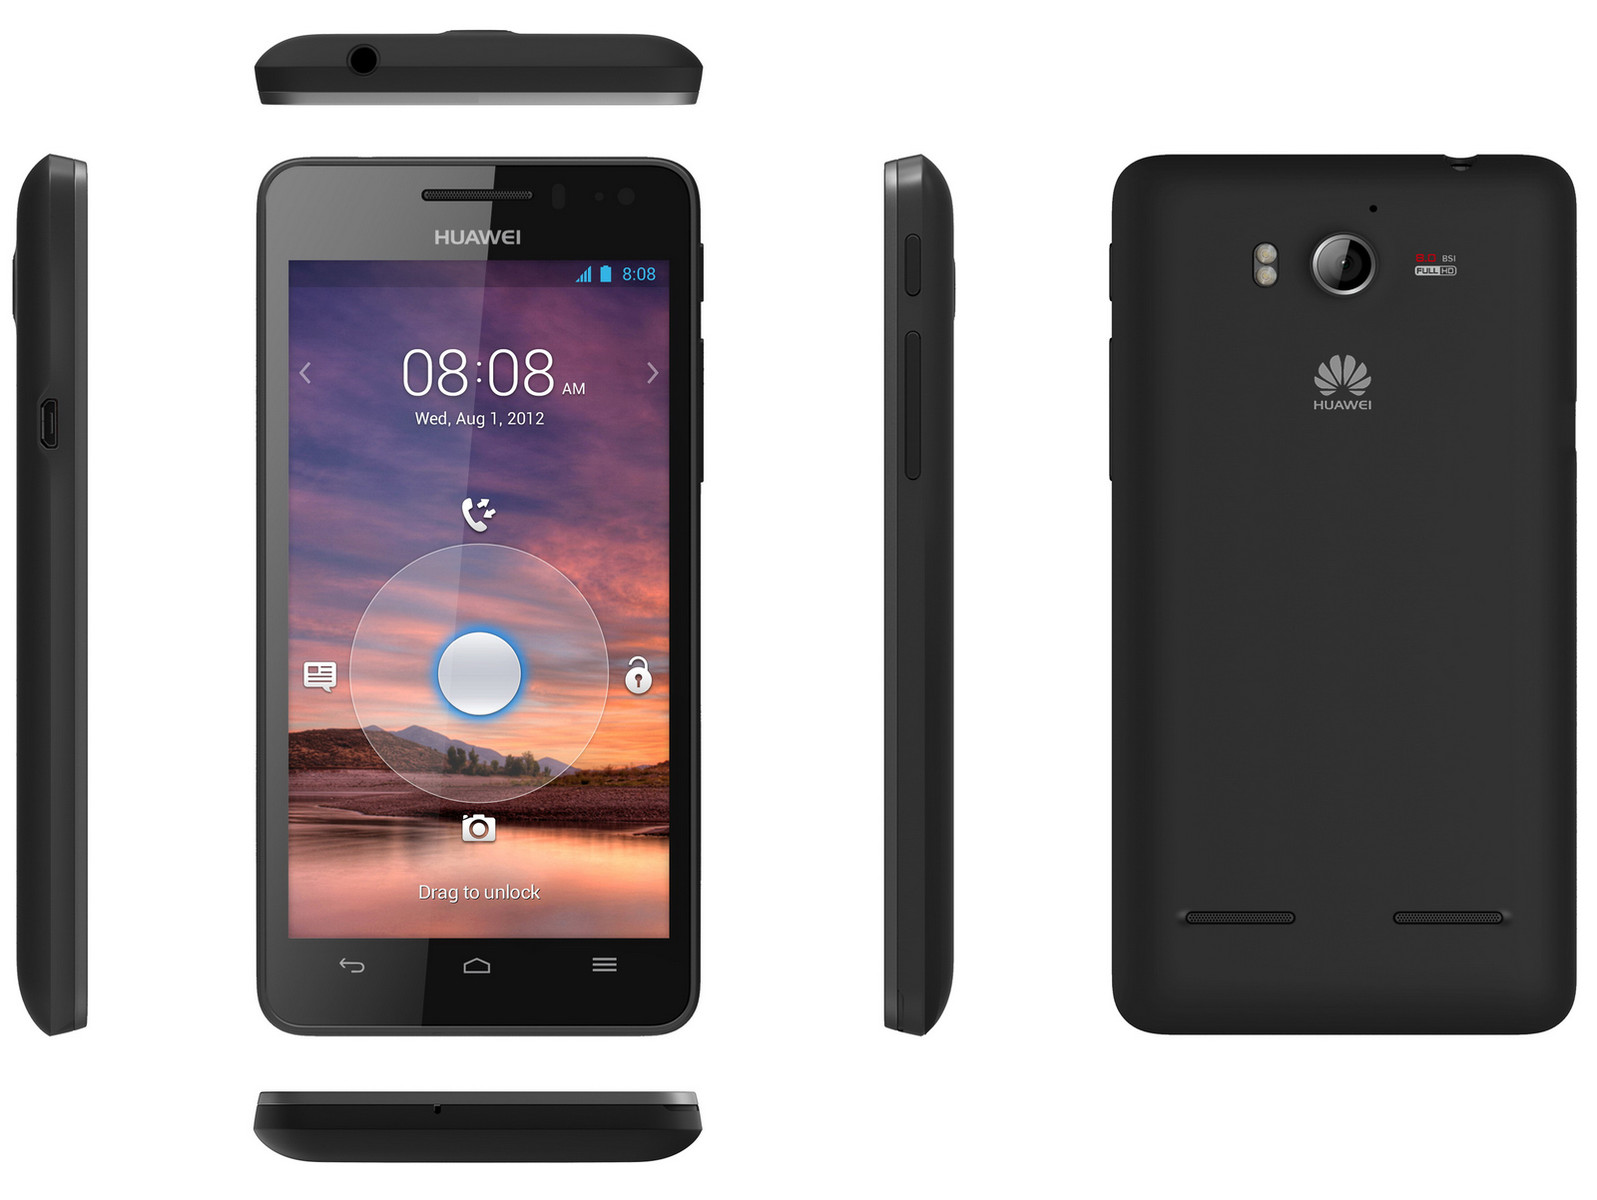 huawei quad core power im smartphone ascend g 615 f r 300 euro news. Black Bedroom Furniture Sets. Home Design Ideas